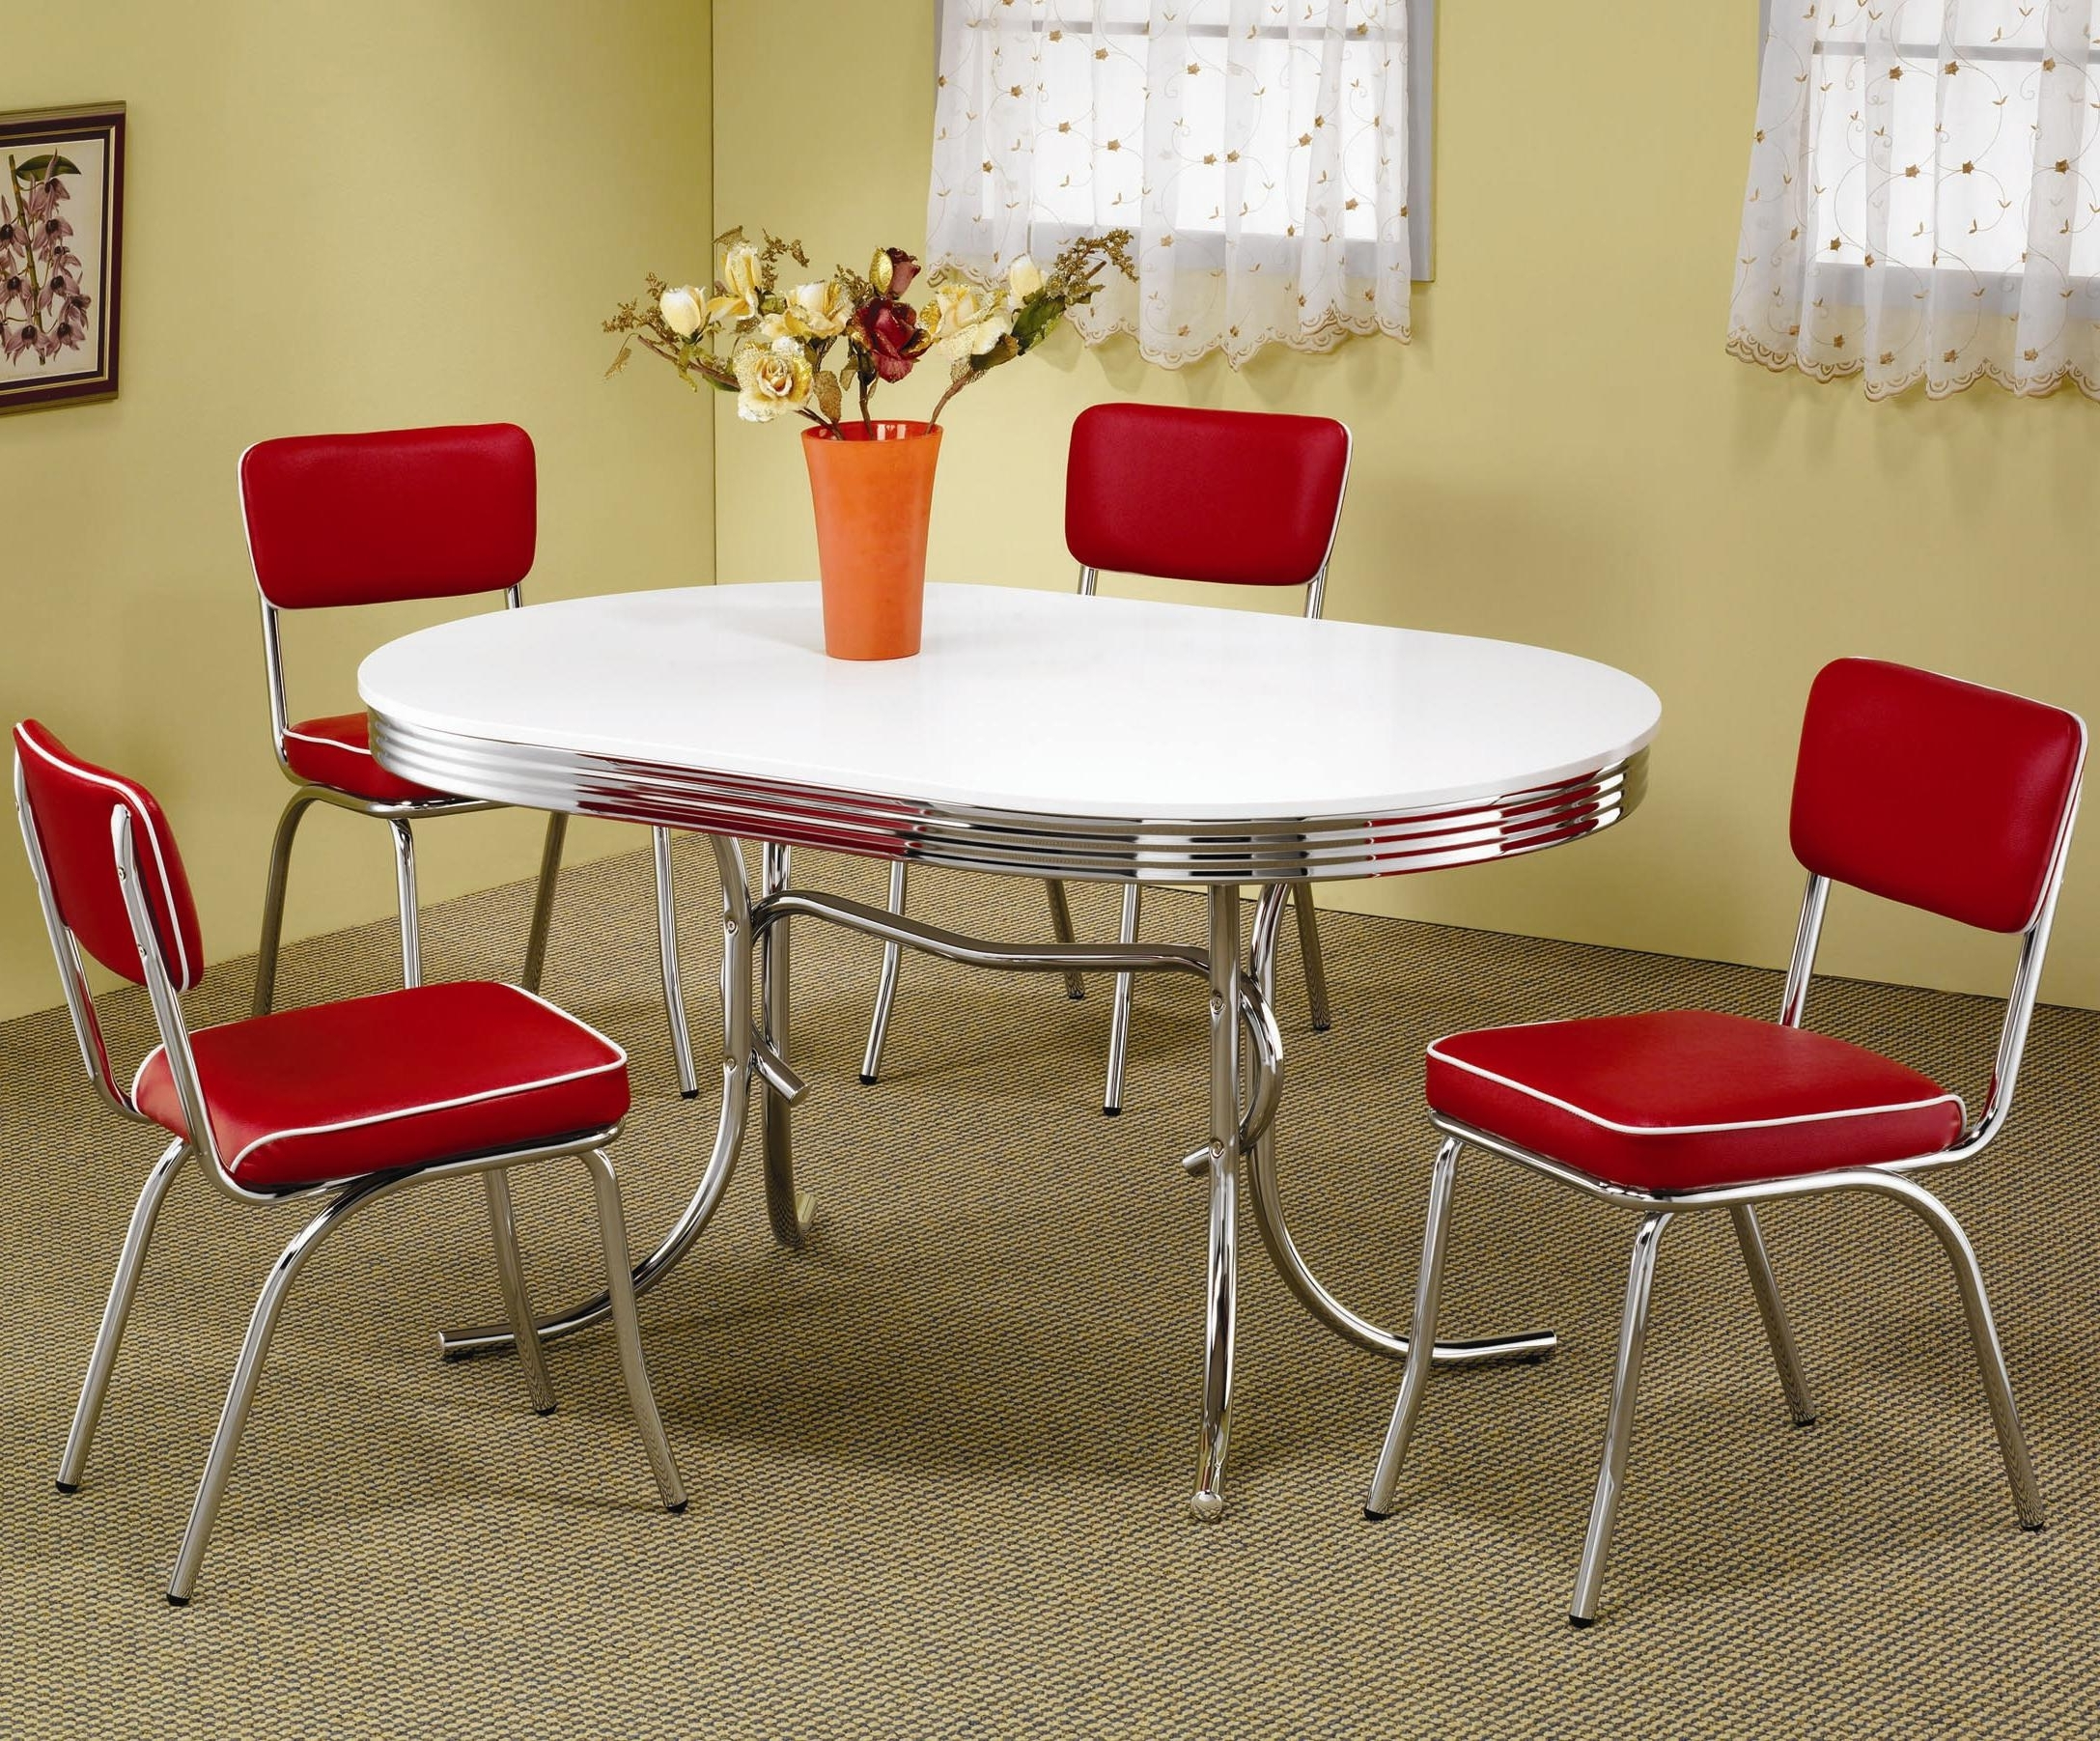 Value City Intended For Chrome Dining Sets (View 15 of 25)